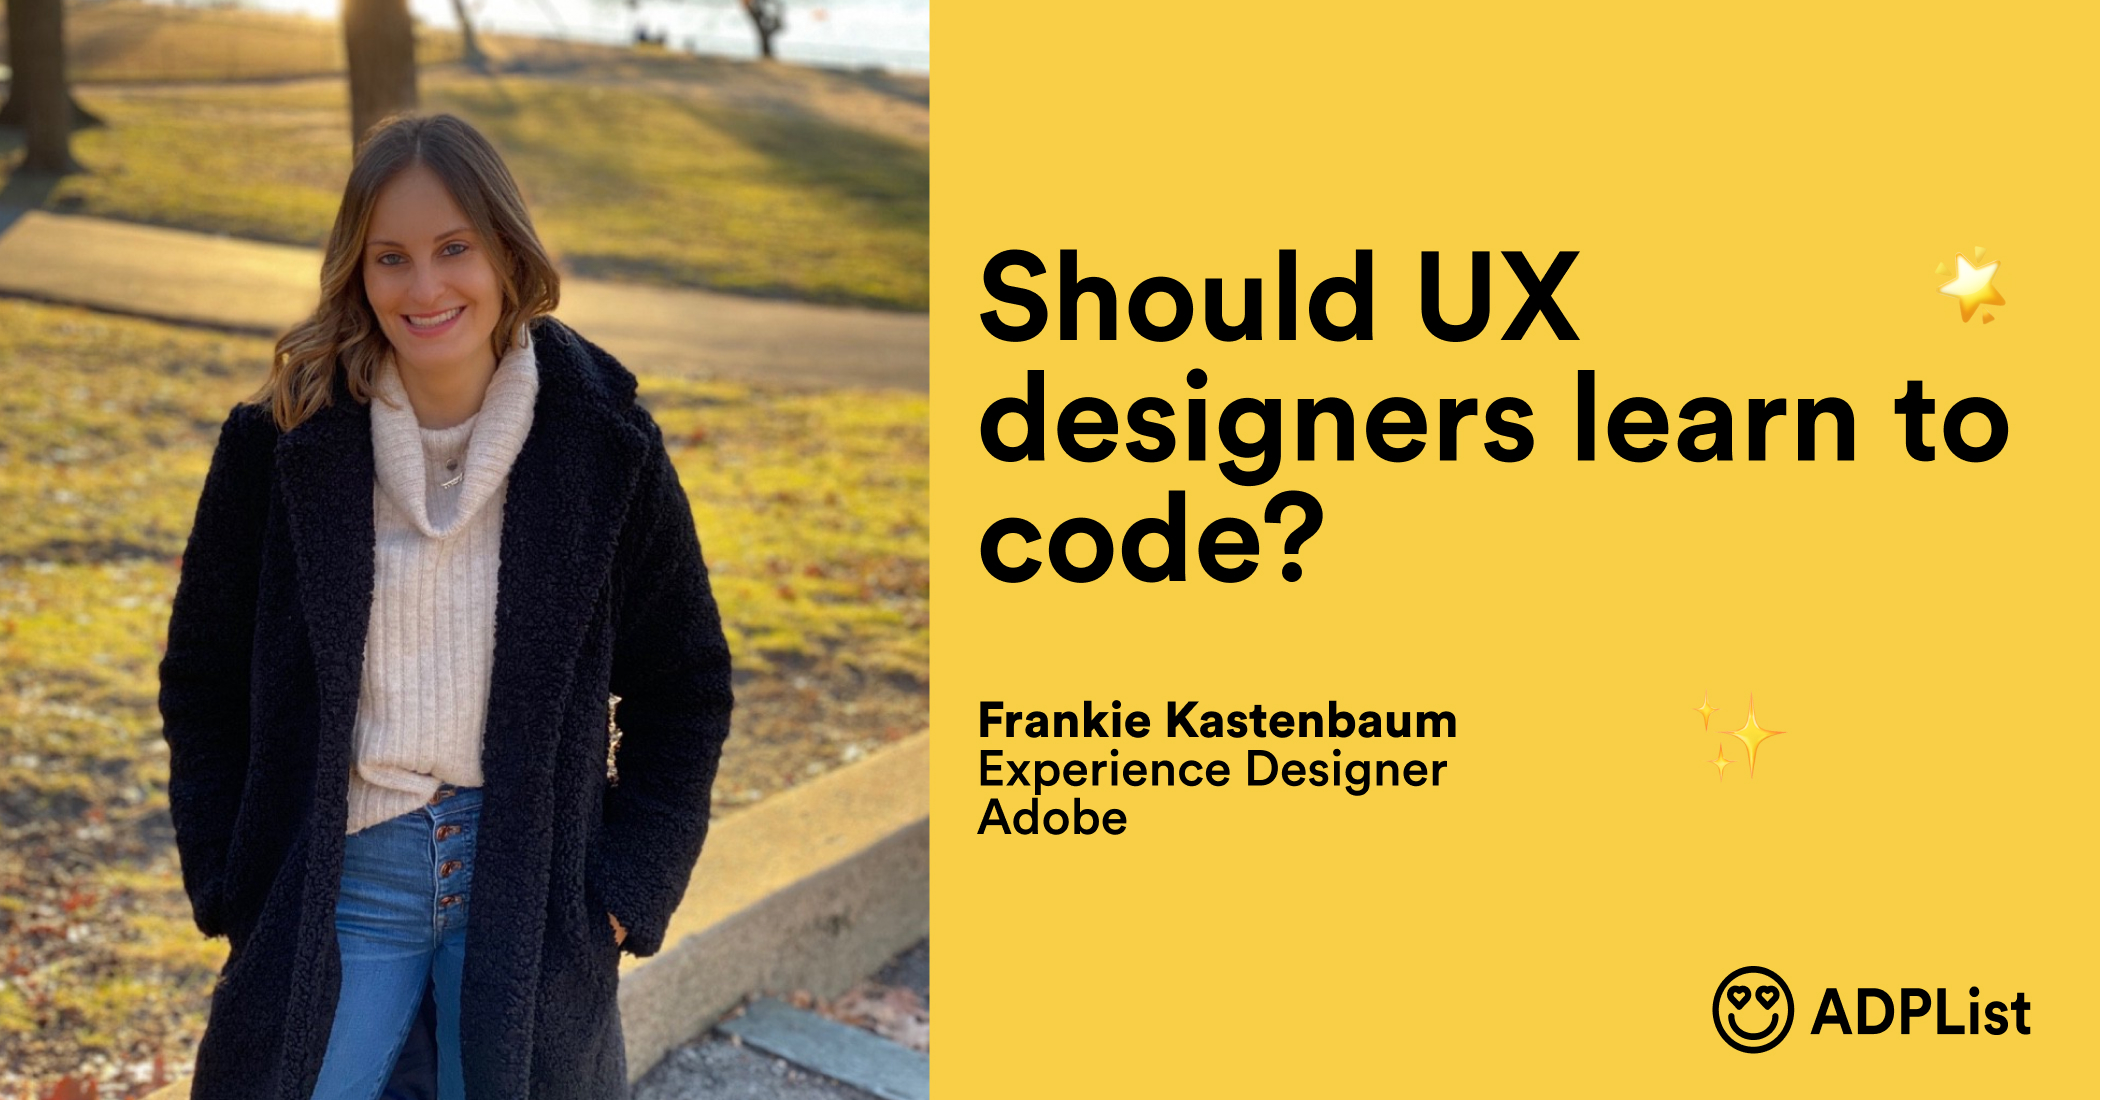 Should UX designers learn to code?